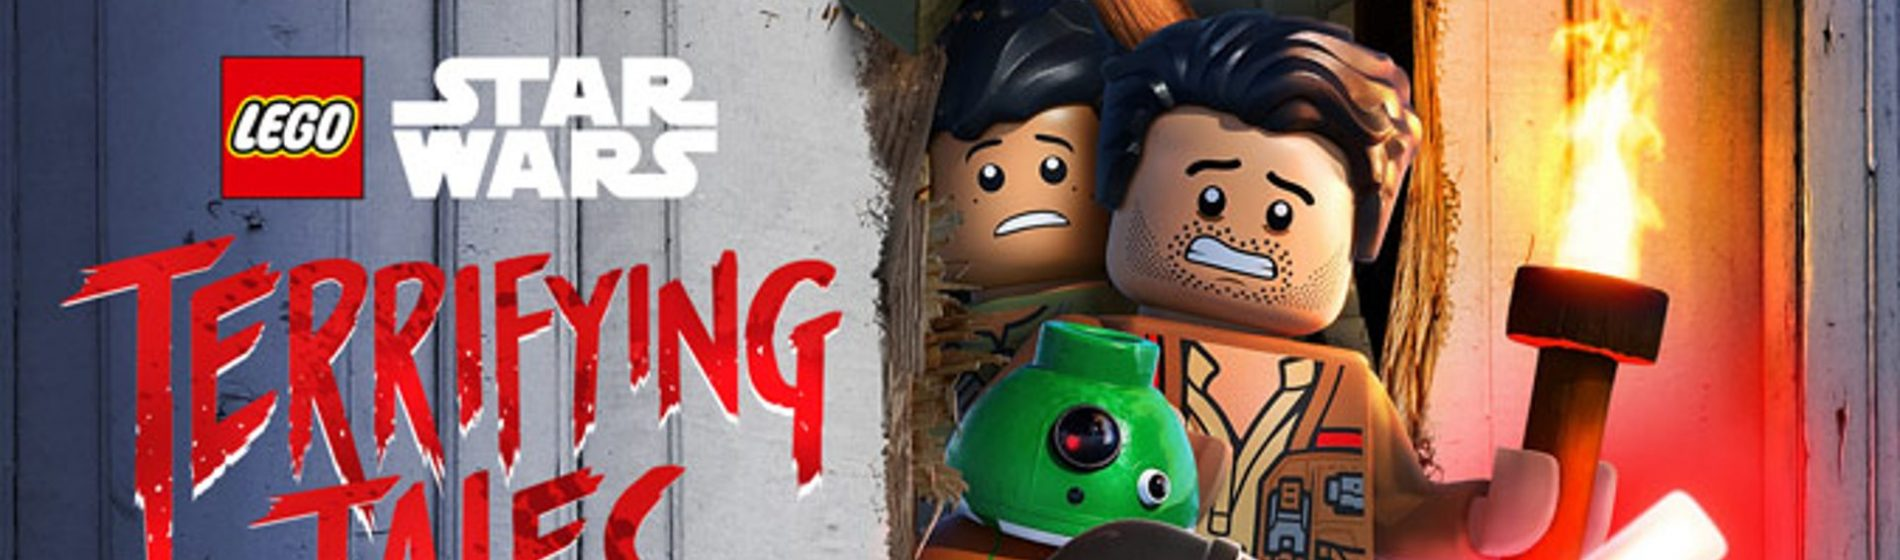 lego-star-wars-terrifying-tales-poster-feature-image